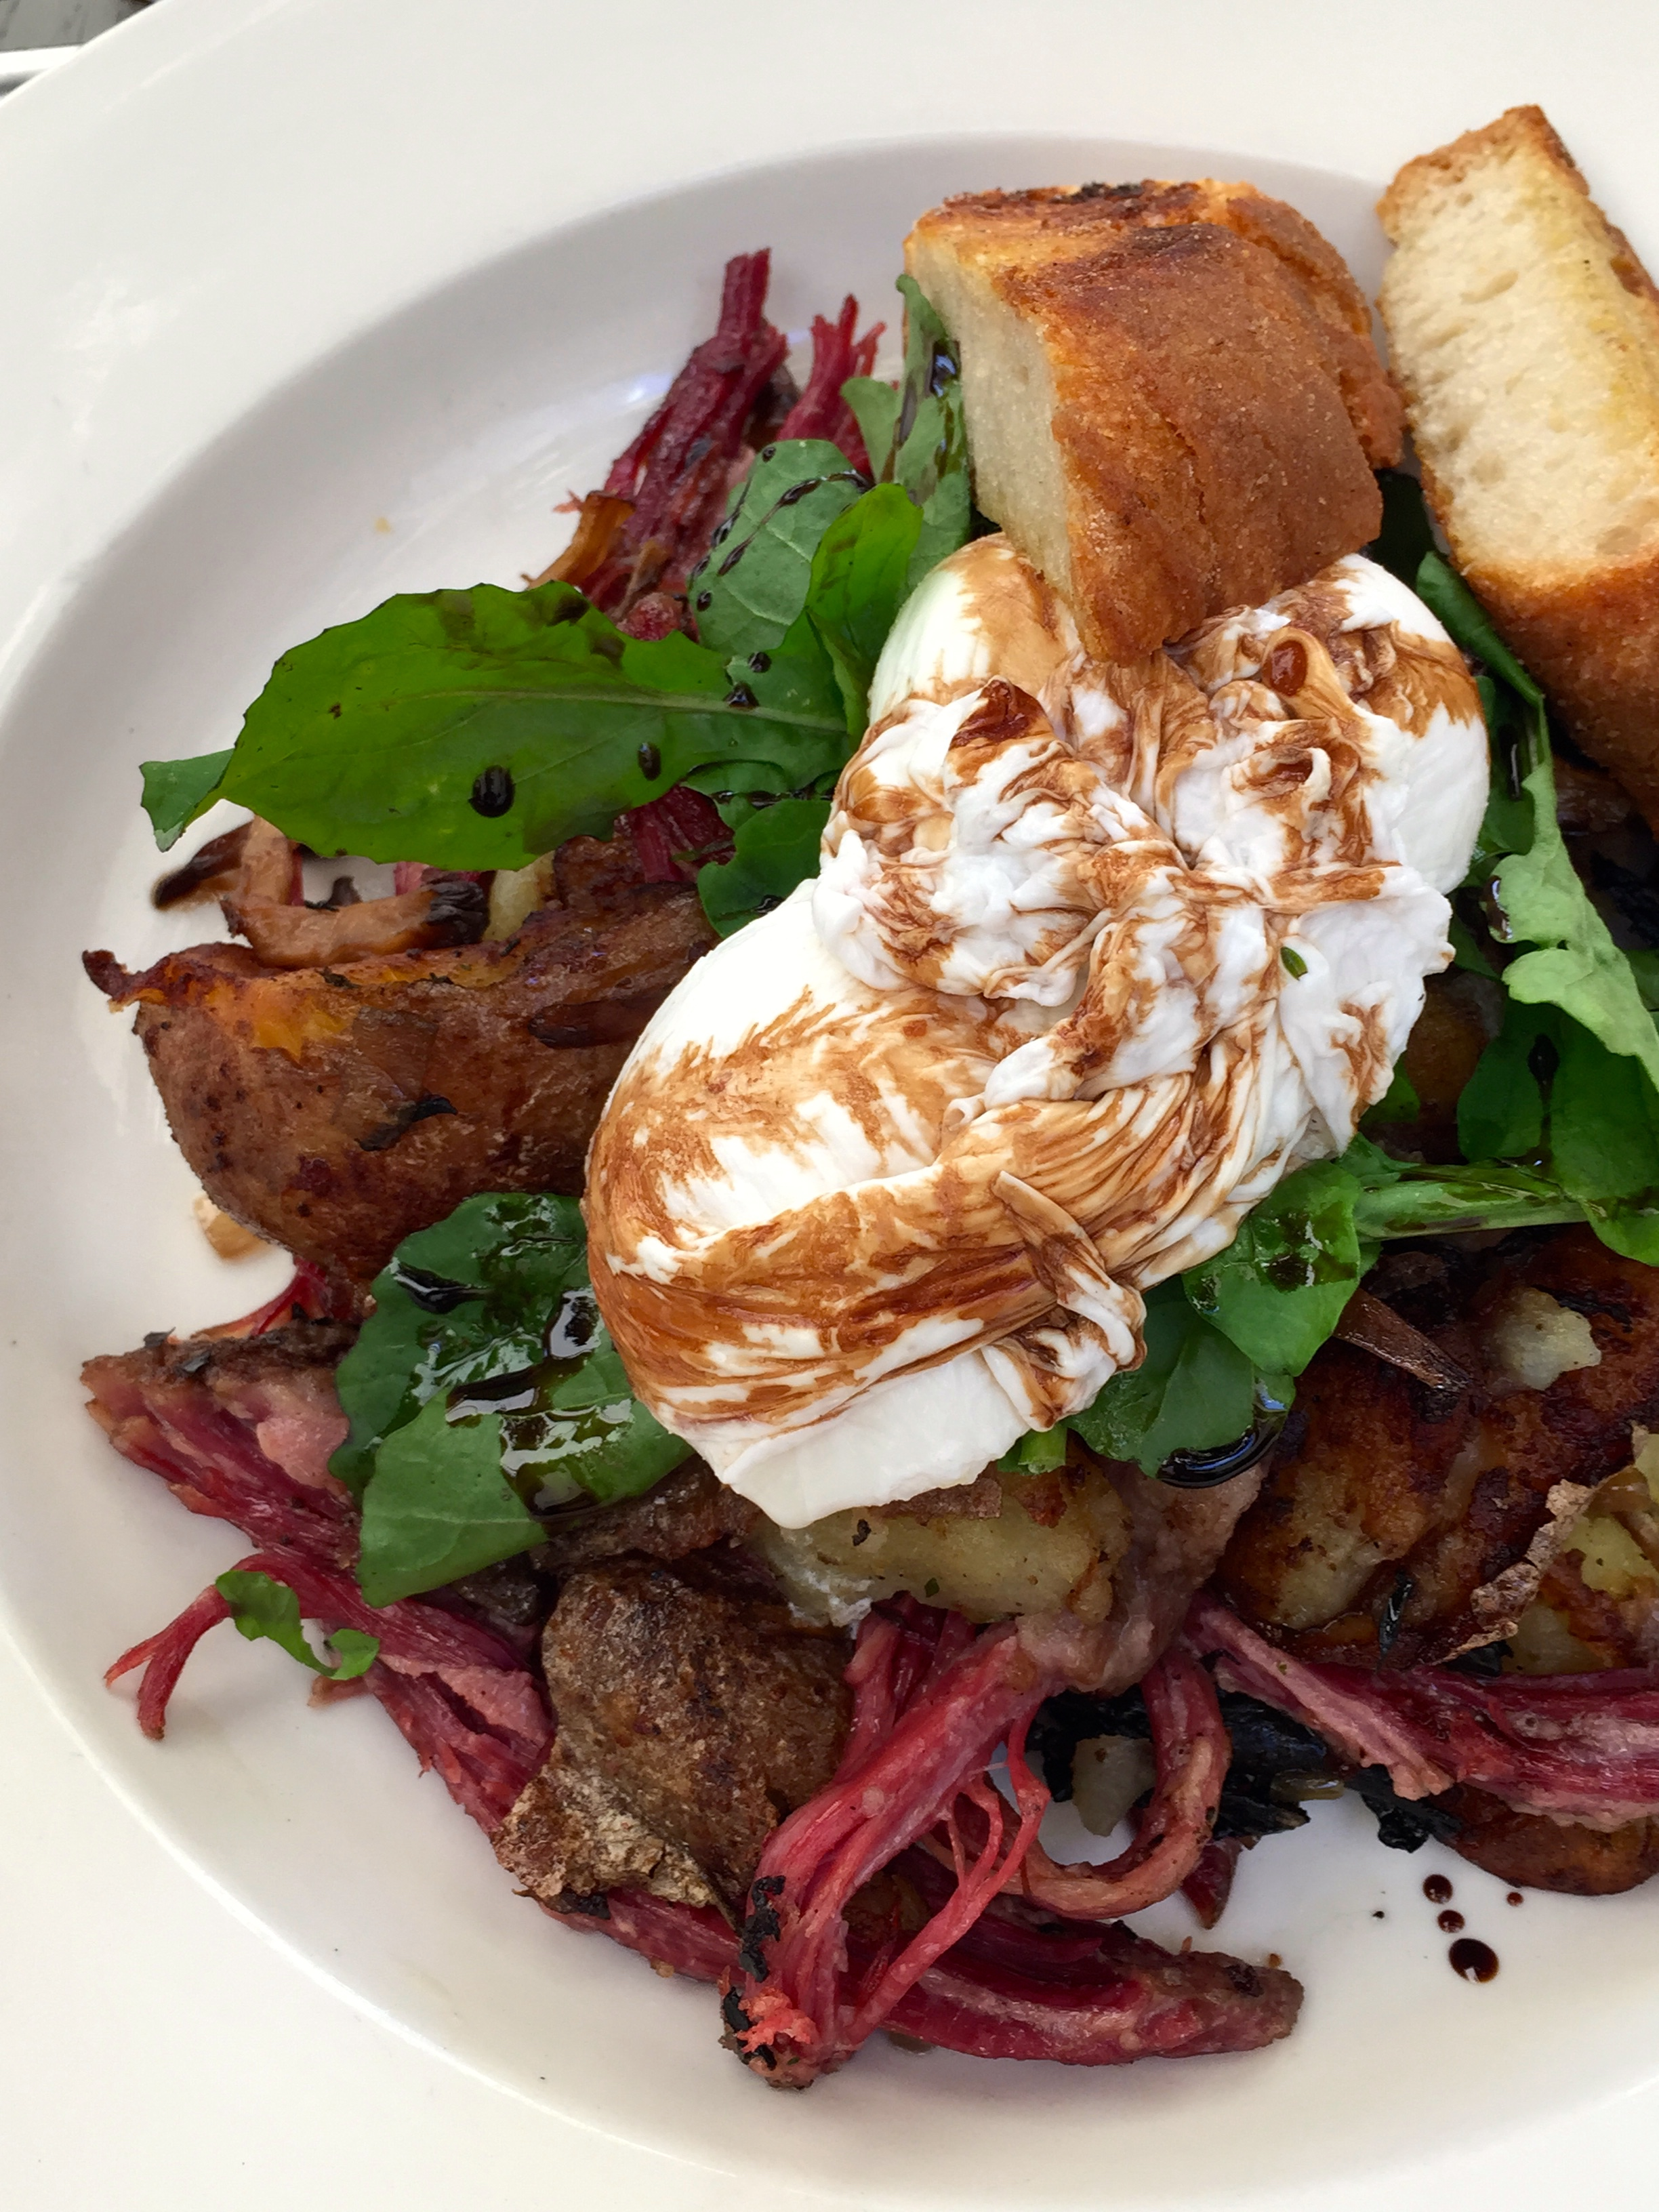 House-made corned beef hash wild mushrooms & poached eggs.